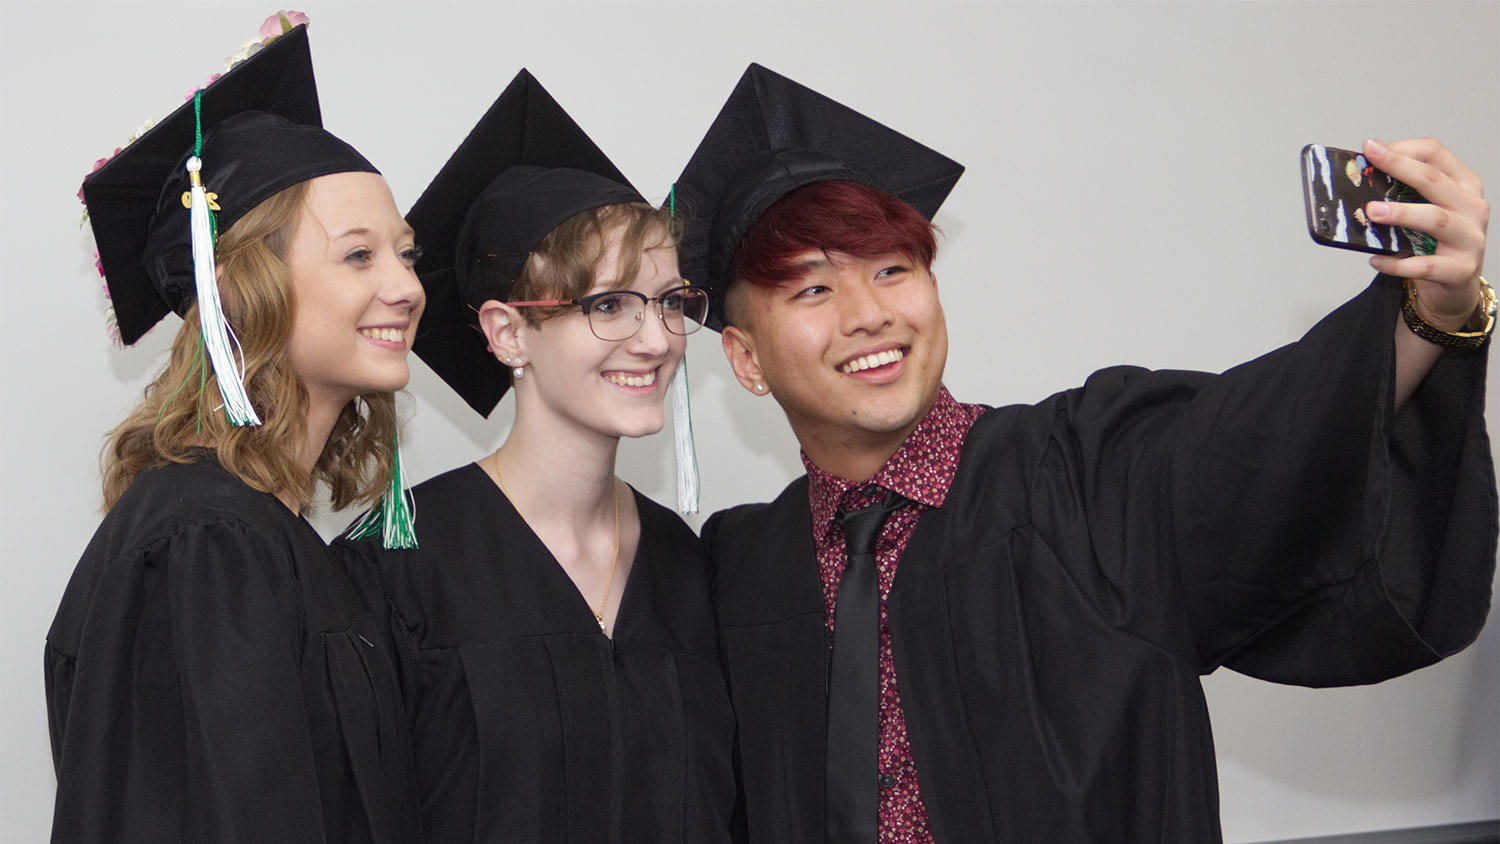 UW-Green Bay, Manitowoc Campus graduates at spring 2019 commencement